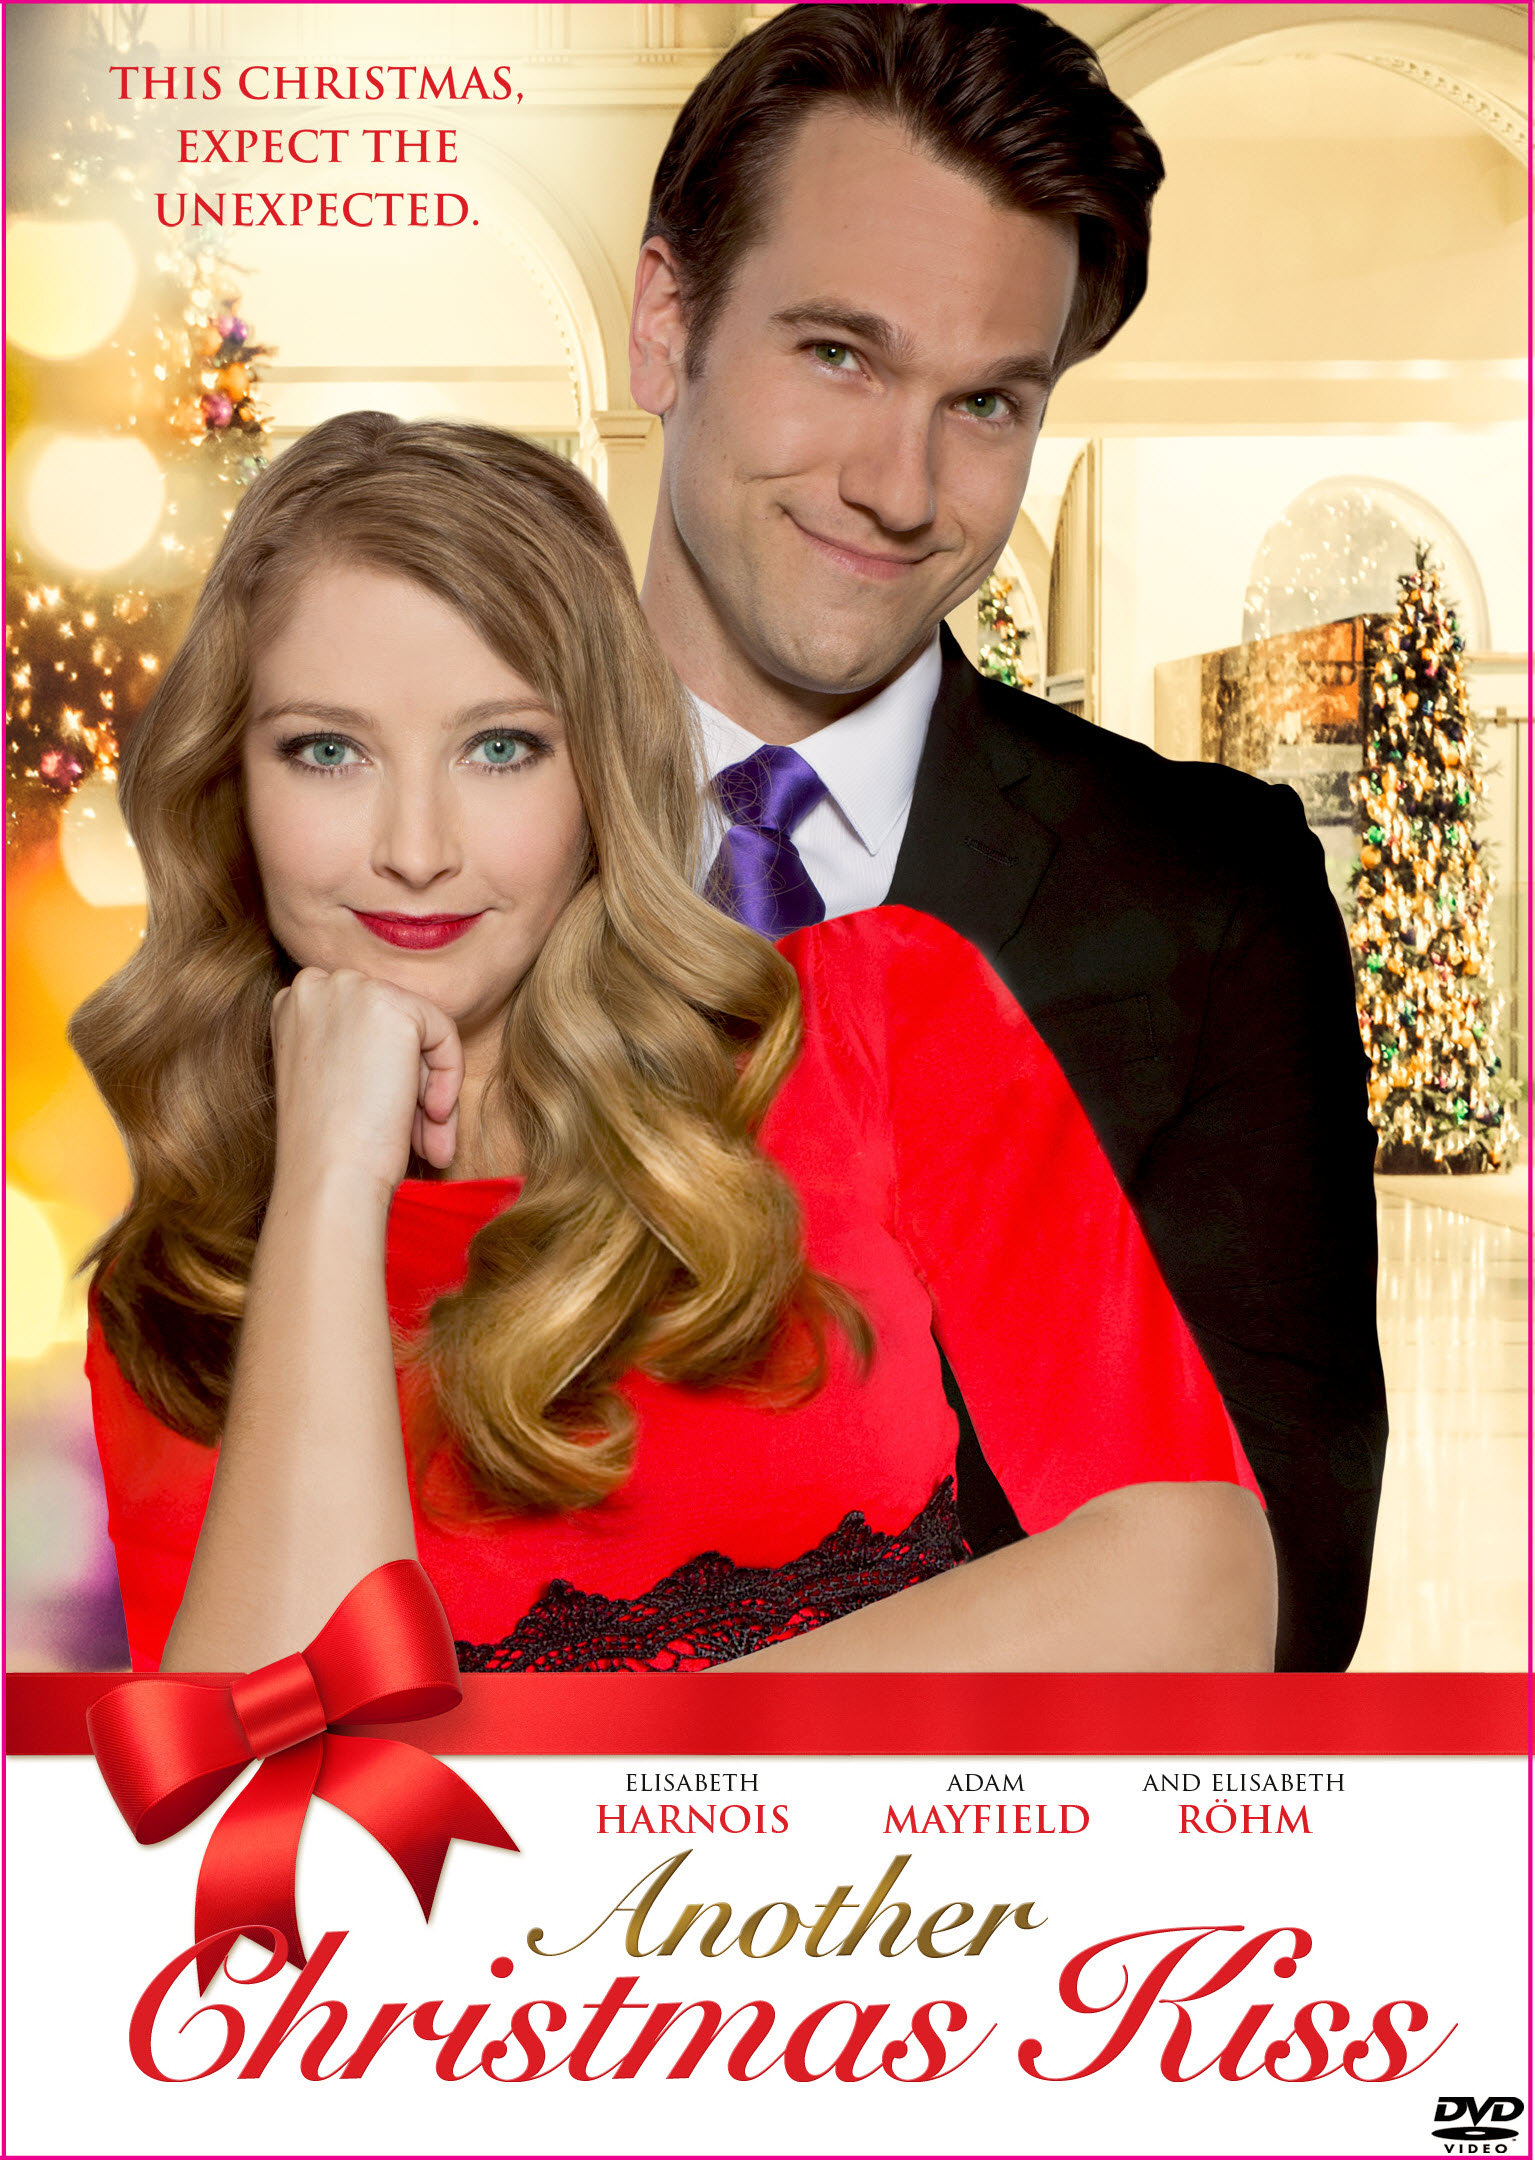 A Christmas Kiss Cast.Film Distribution Film Production